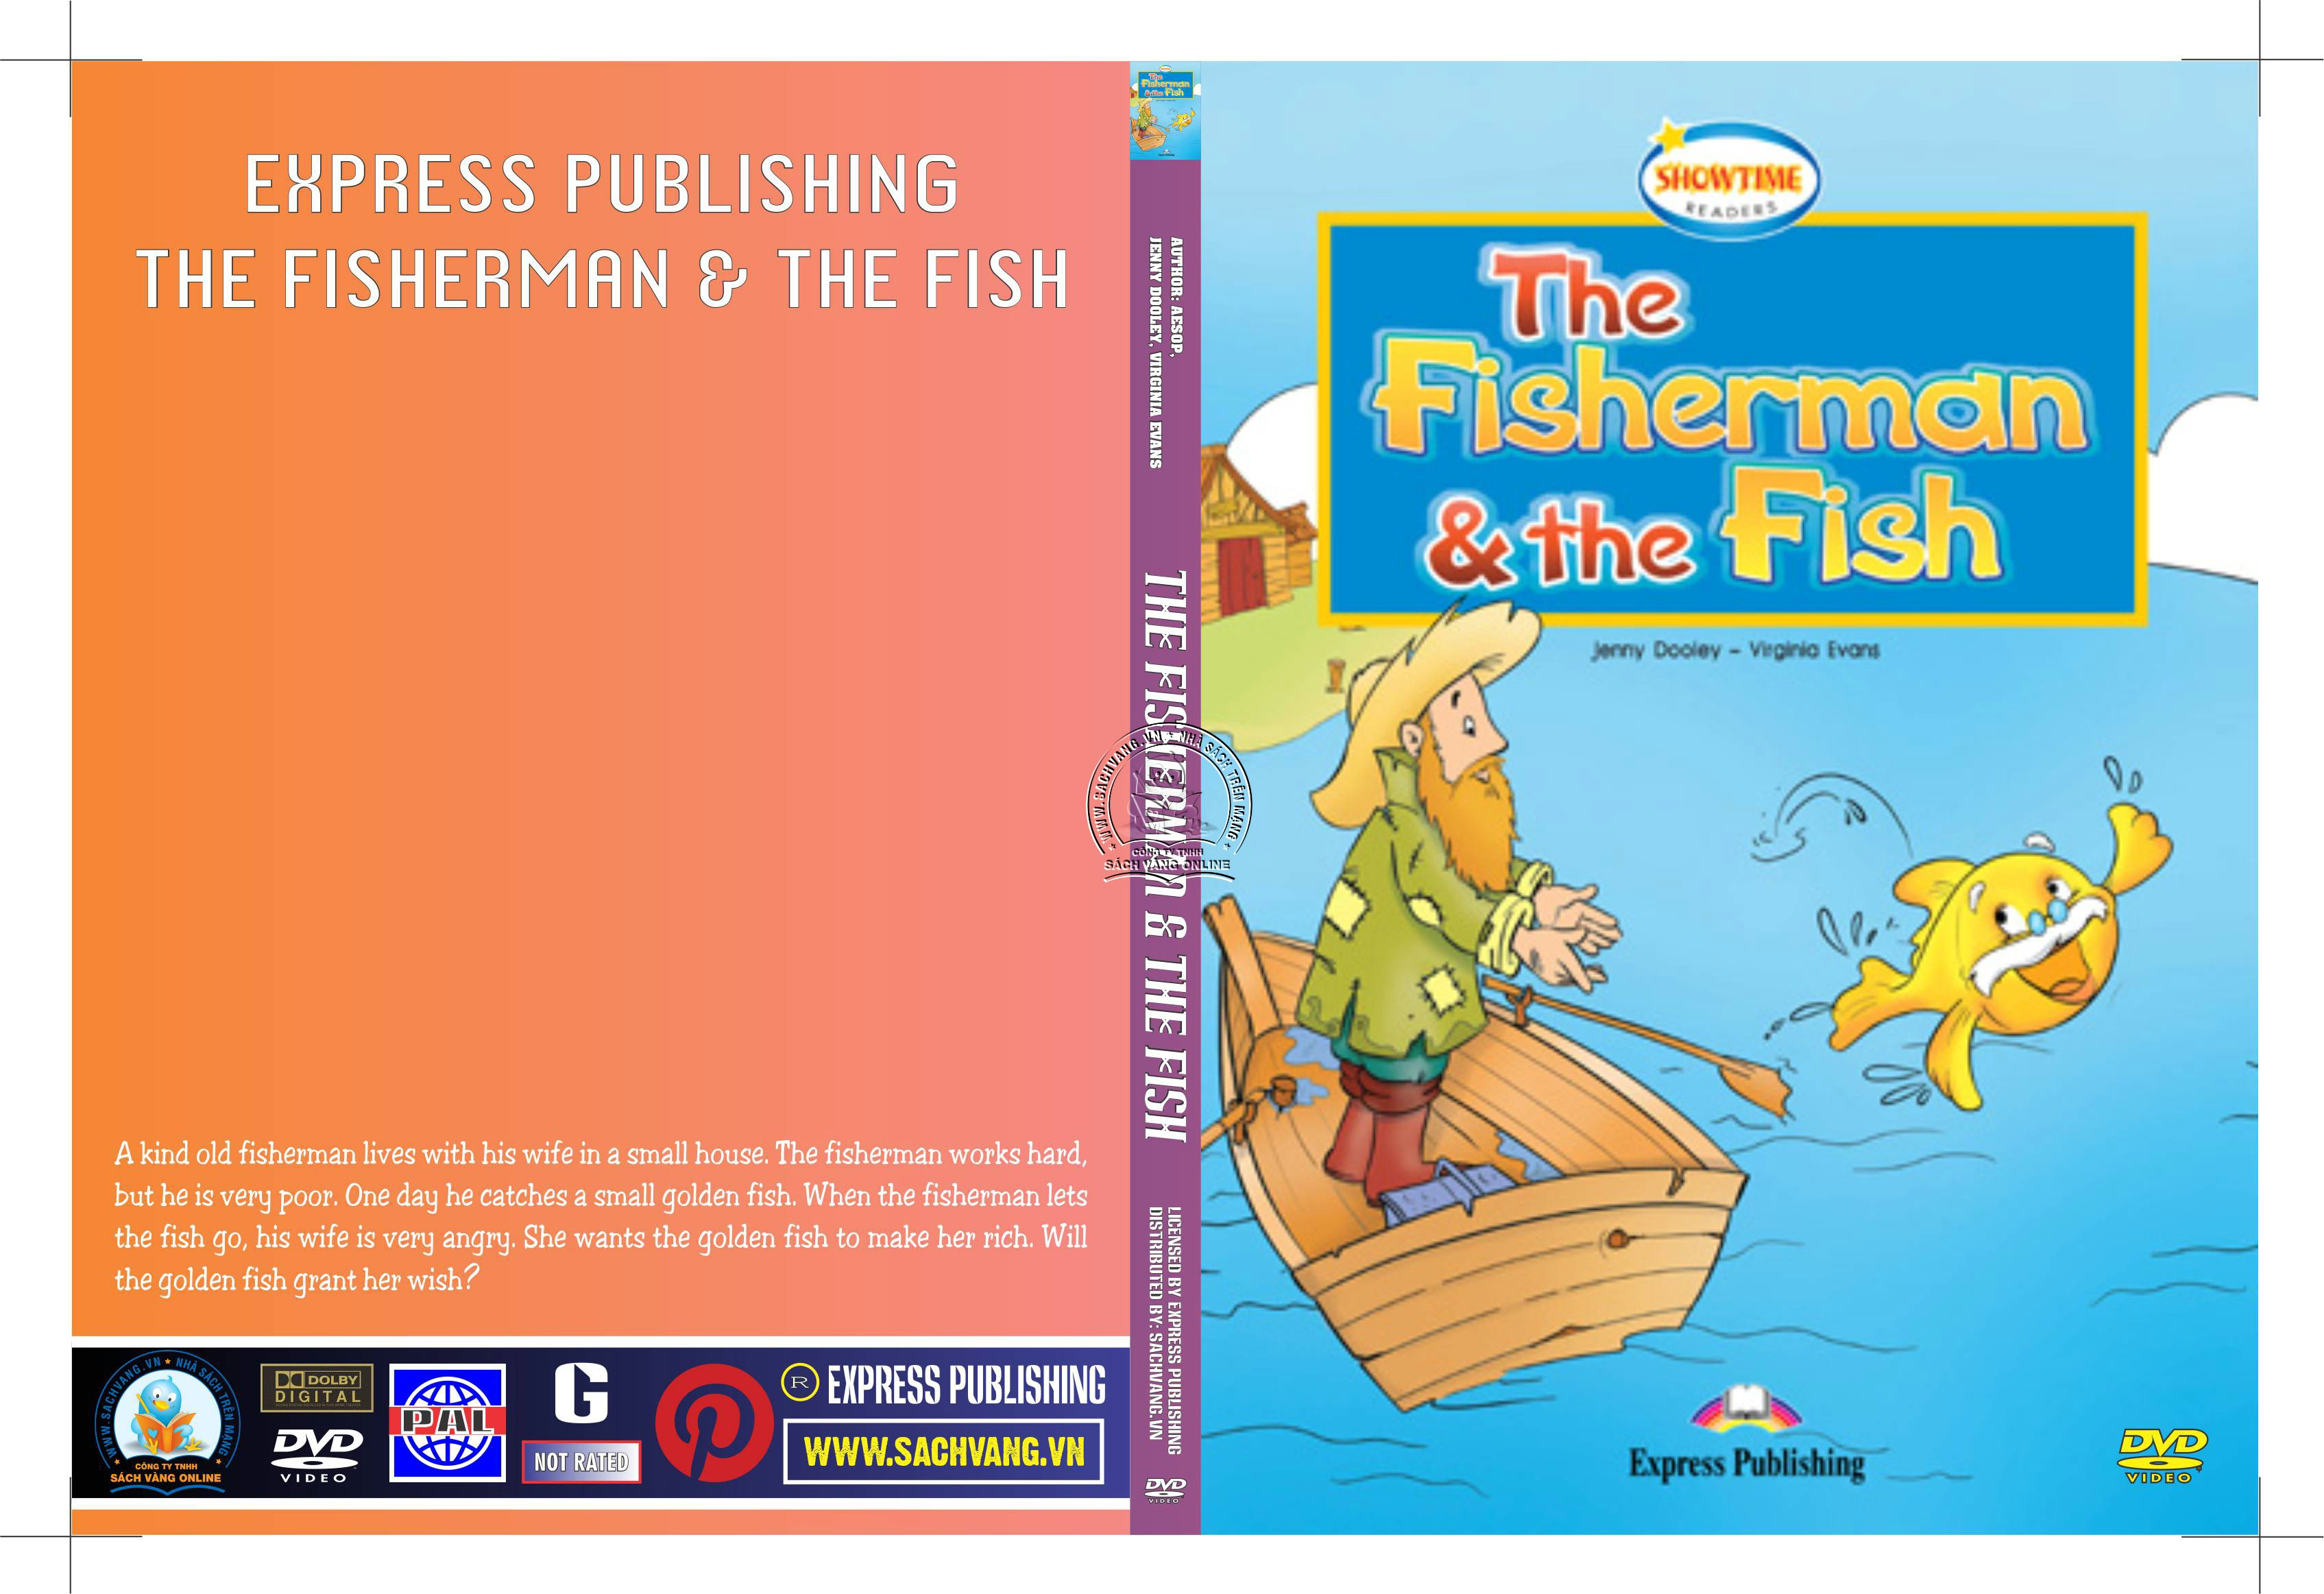 Express Publishing - The Fisherman and The Fish - Ông Lão Câu Cá Và Con Cá Vàng - cover